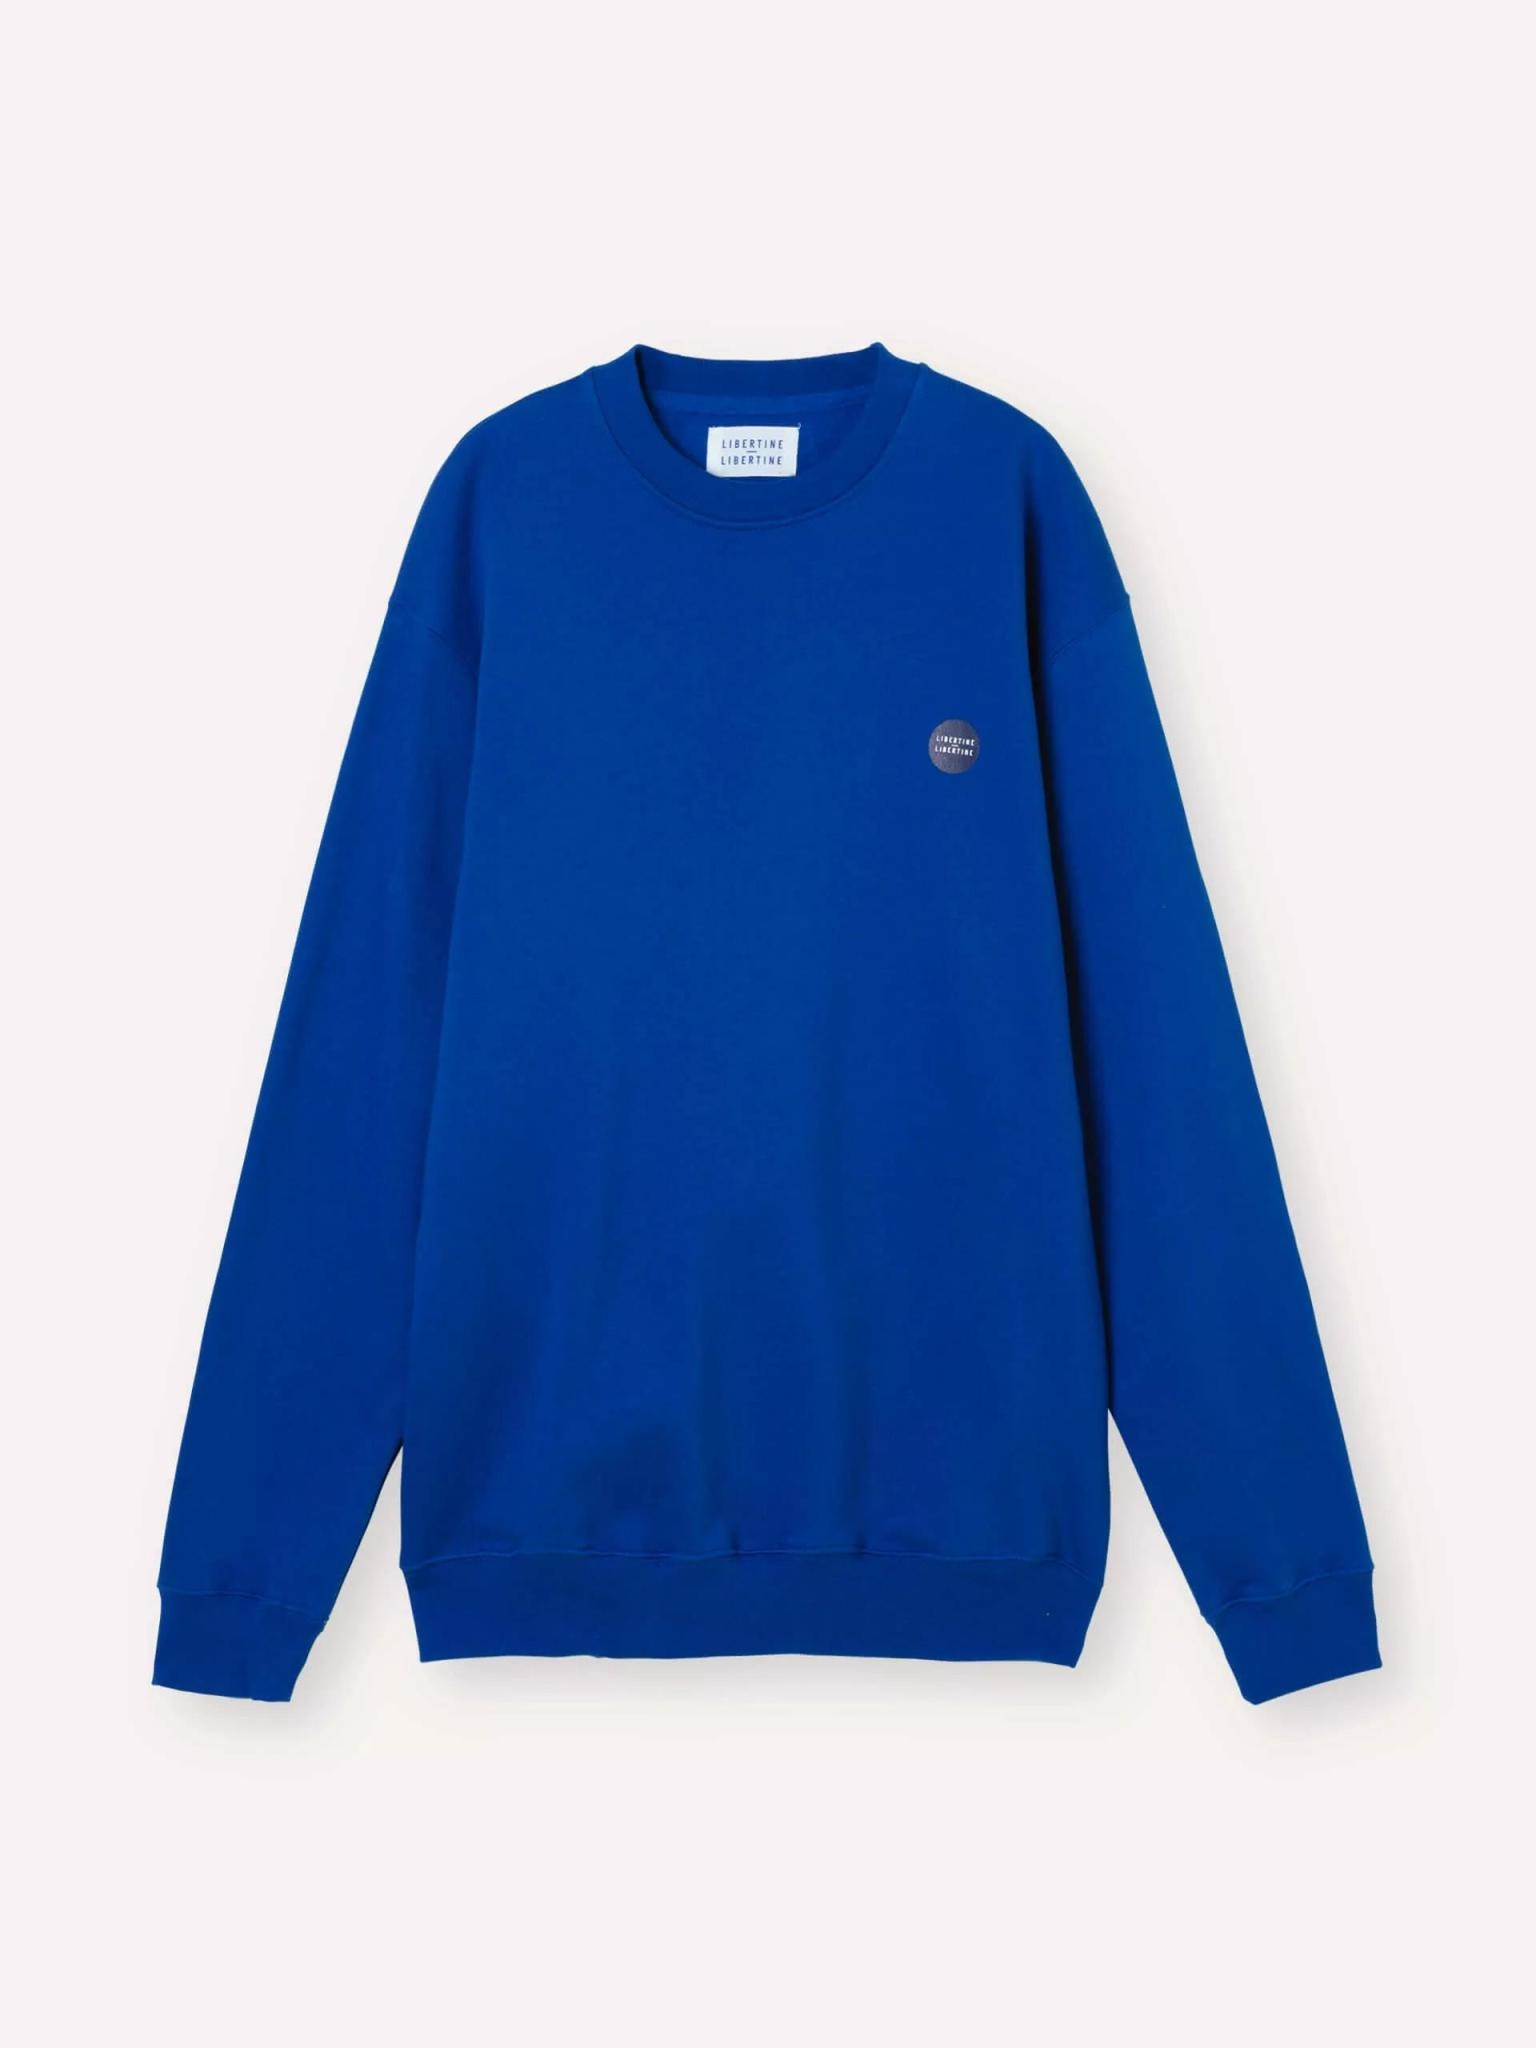 Society Logo Sweatshirt HQ Blue-1